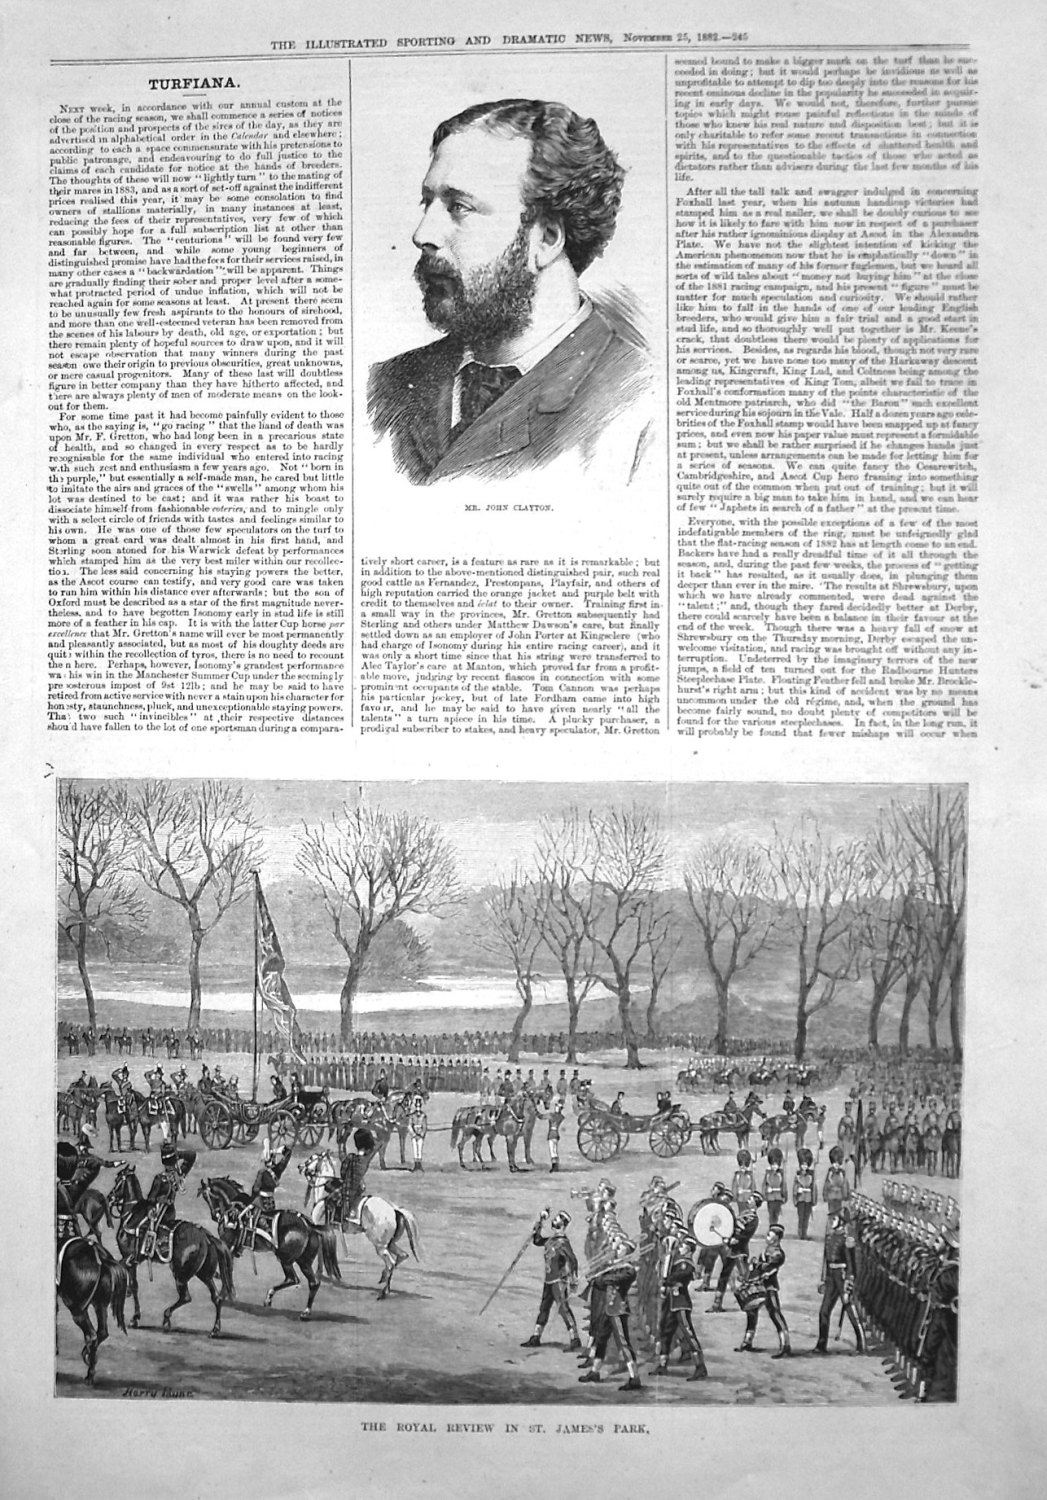 The Royal Review in St. James's Park. 1882